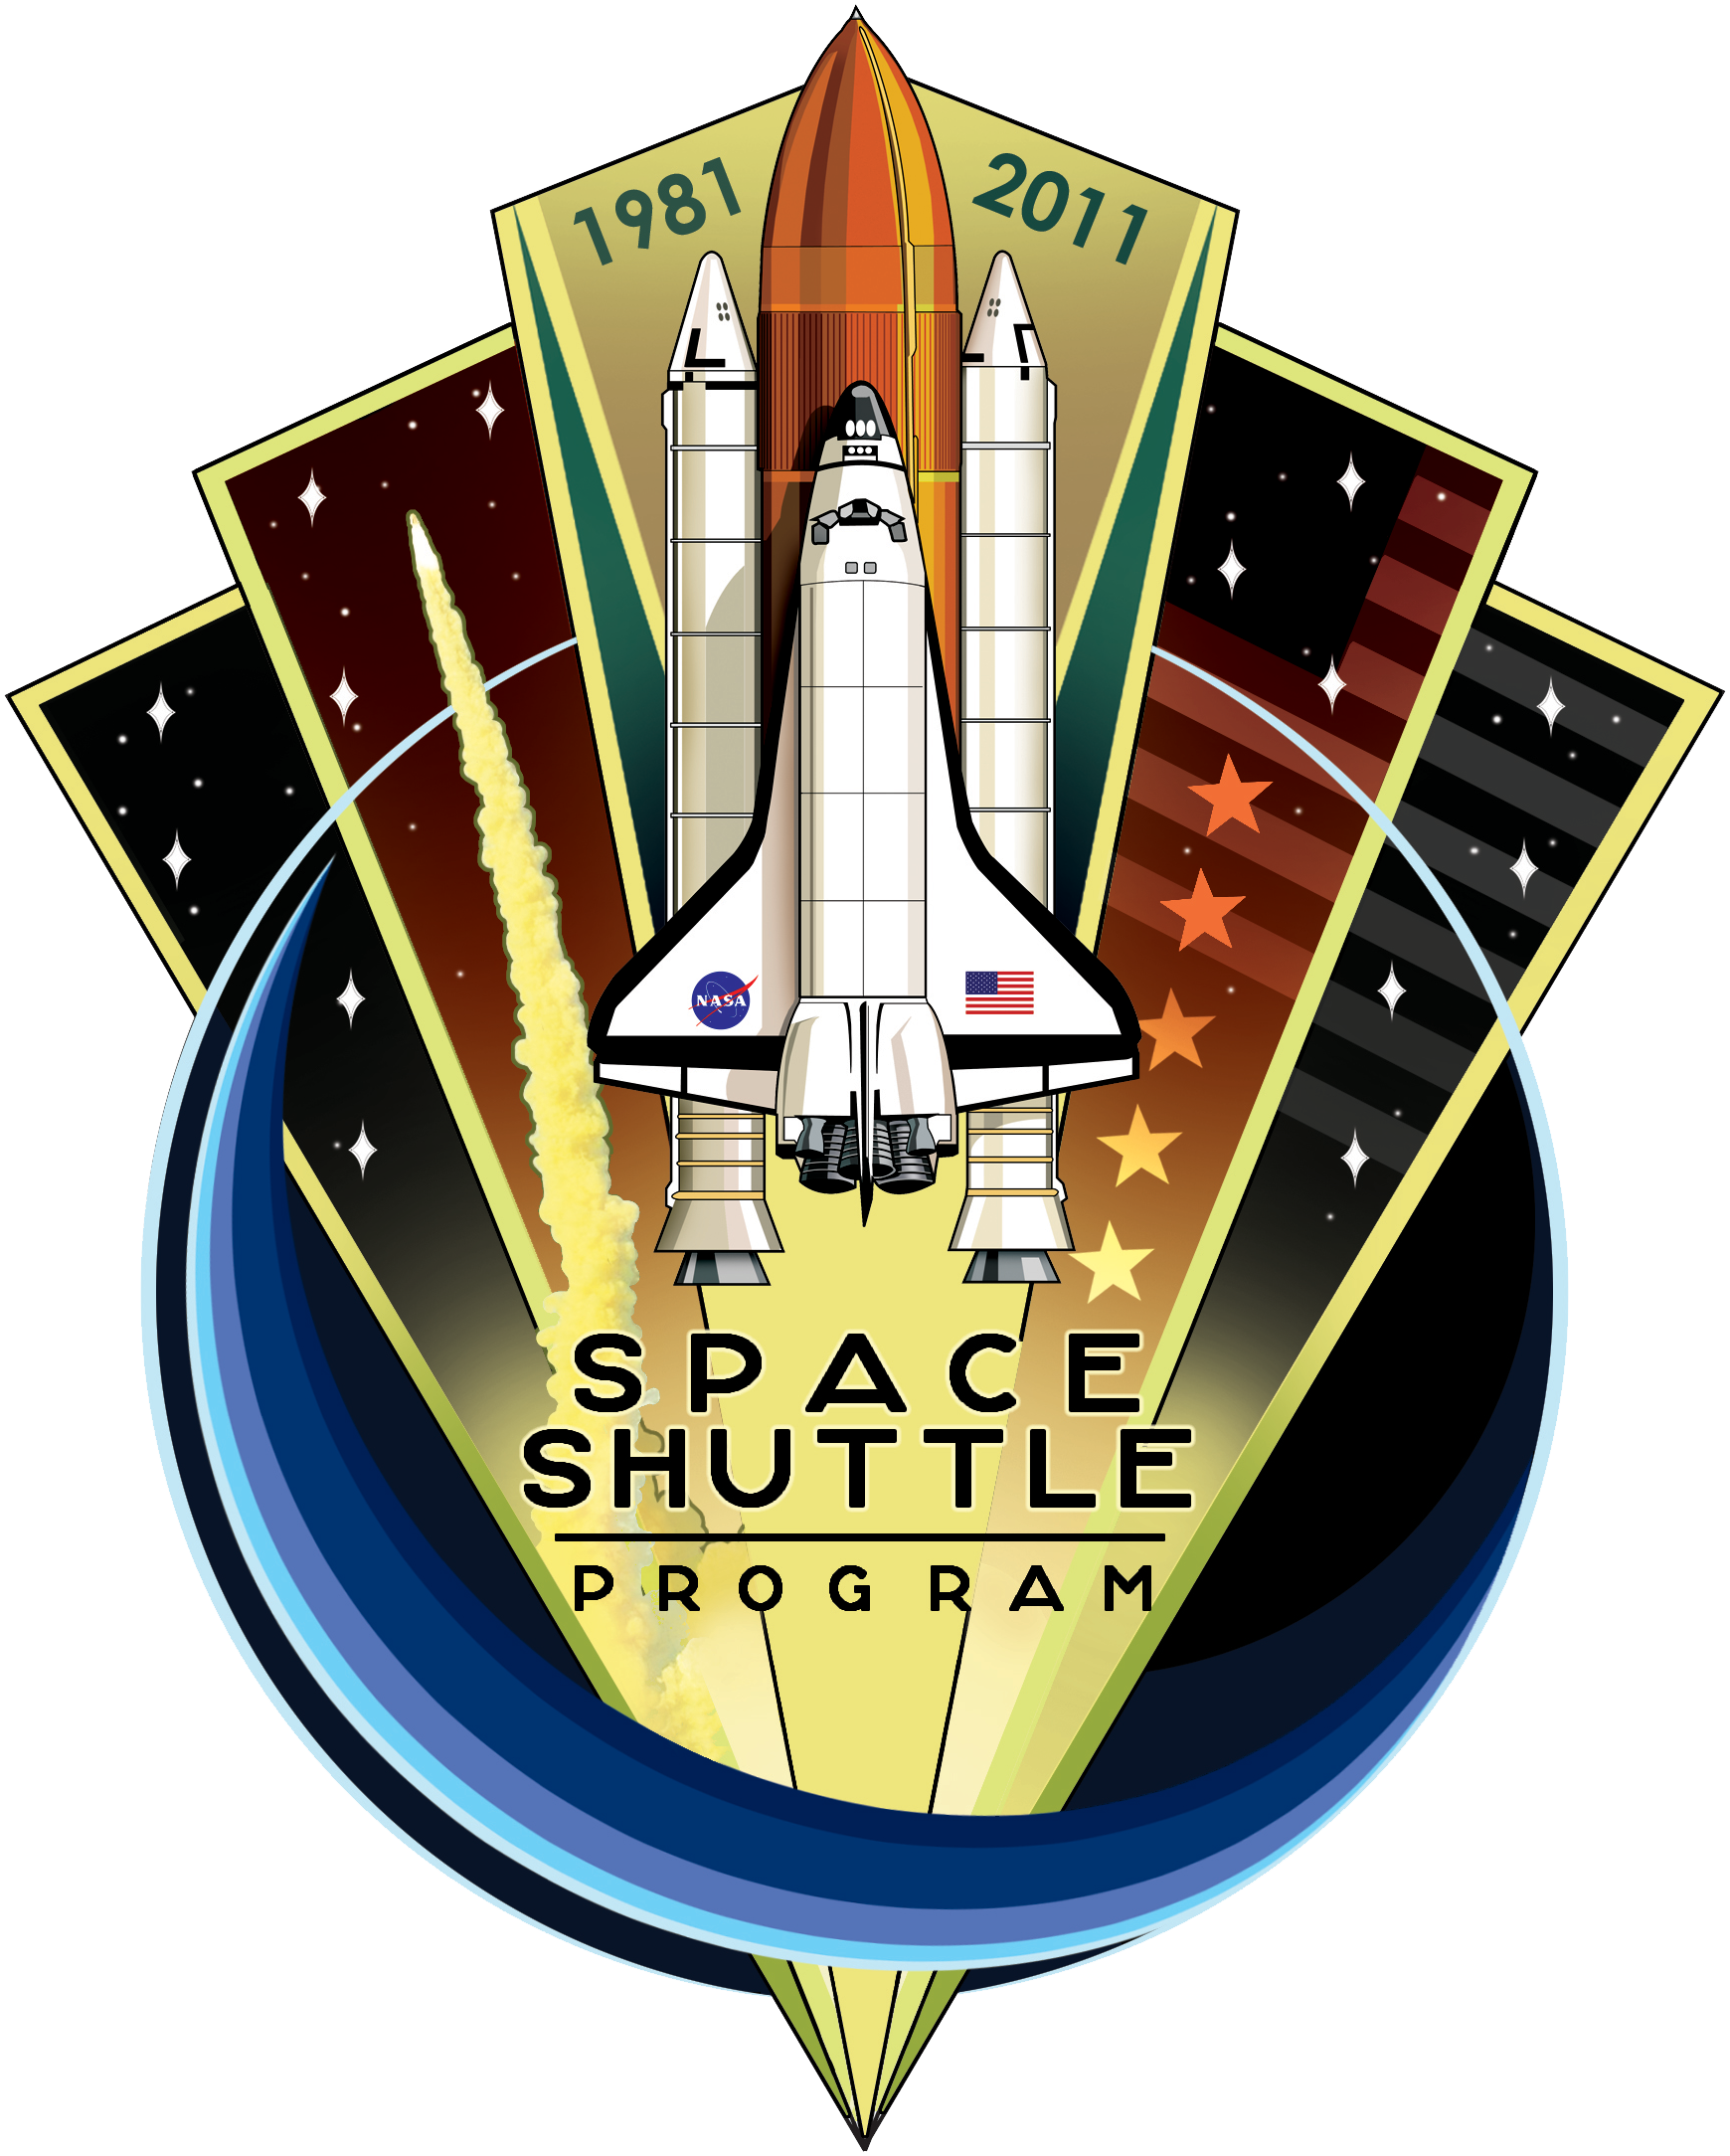 space shuttle program history -#main